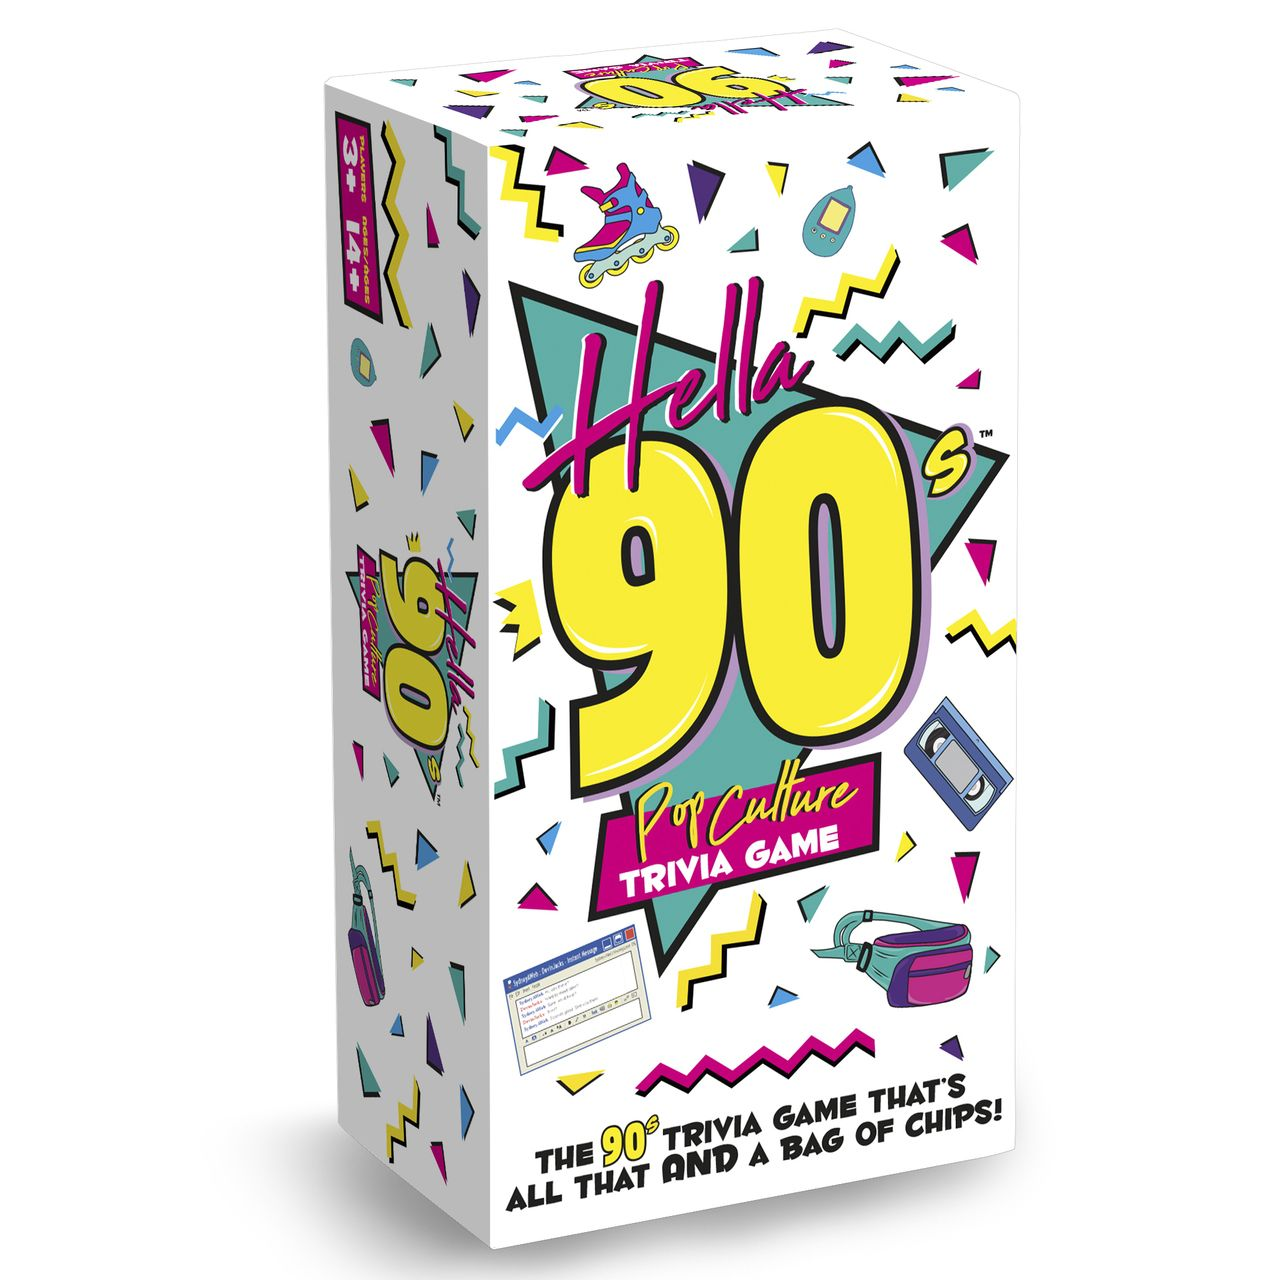 Hella 90s Pop Culture Trivia Game Pop culture trivia